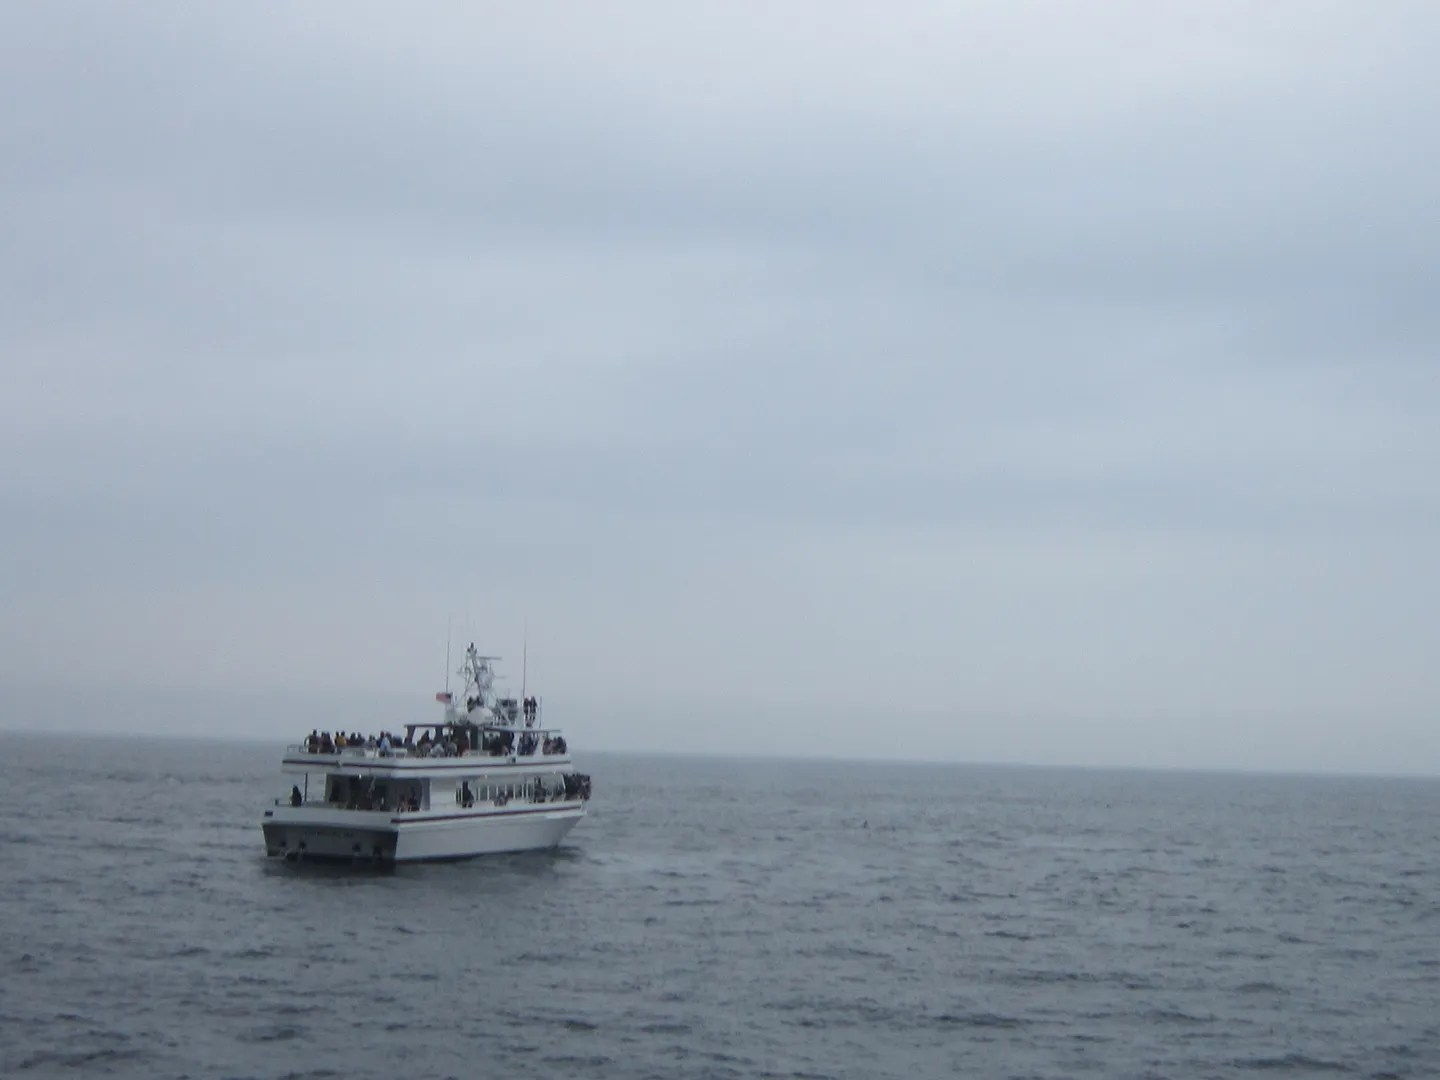 whale watching cruise, Cape Cod